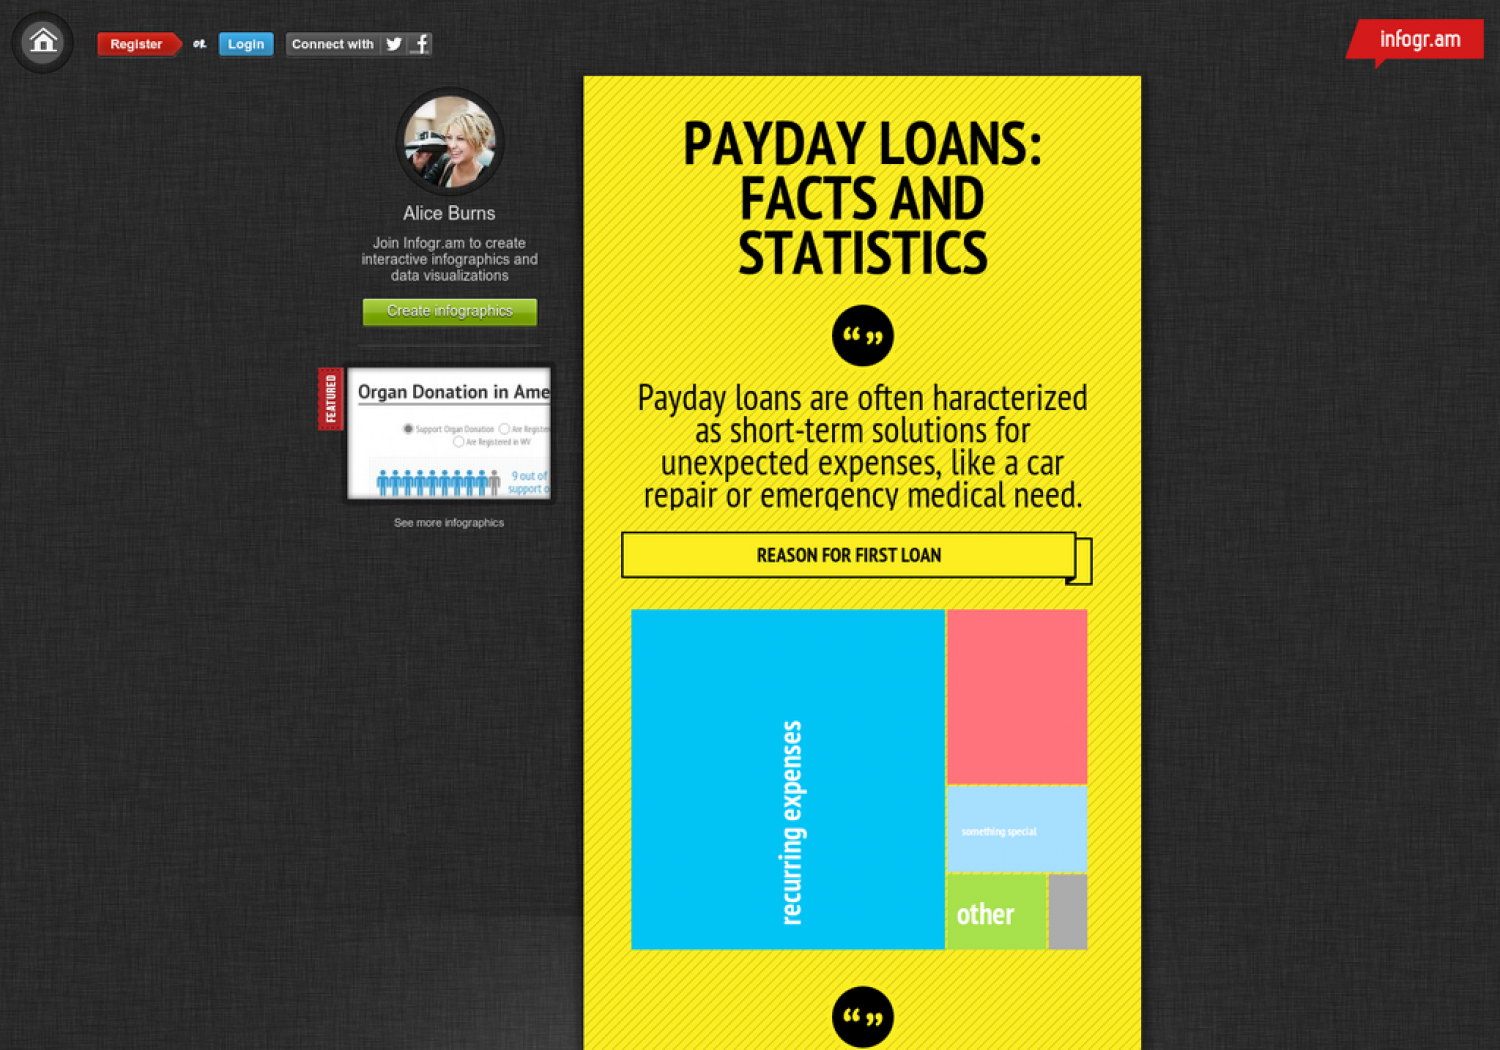 Facts payday lenders don't want you to know about: